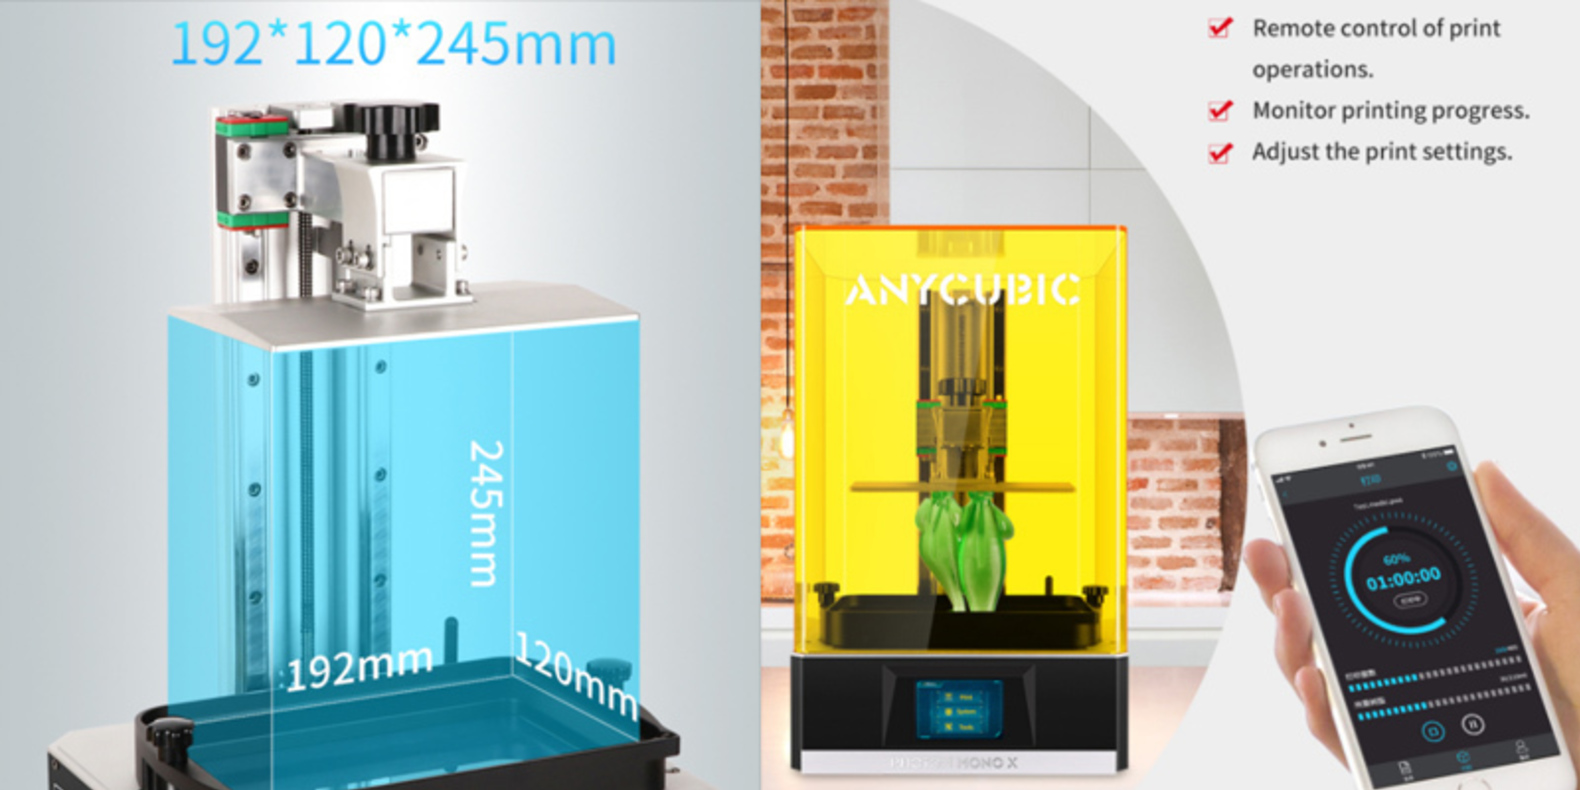 Anycubic Photon Mono X brings large built volume and fast printing speed with monochrome LCD display